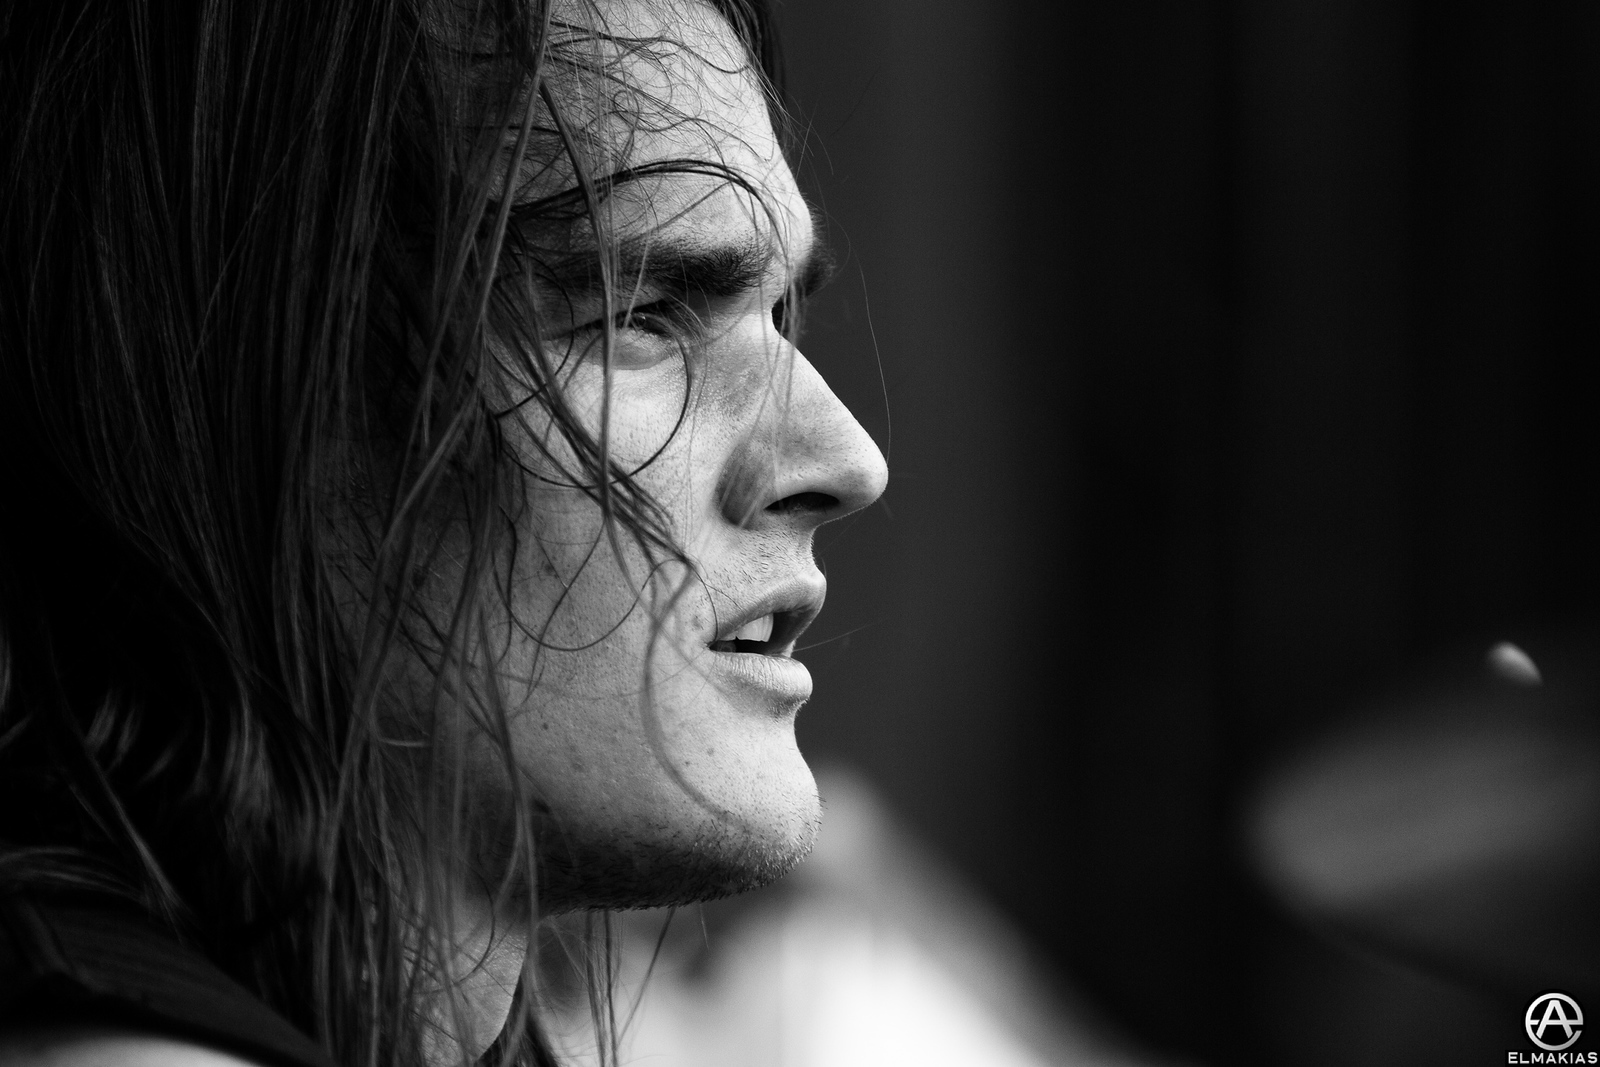 Onstage Portait - Pat Kirch of The Maine